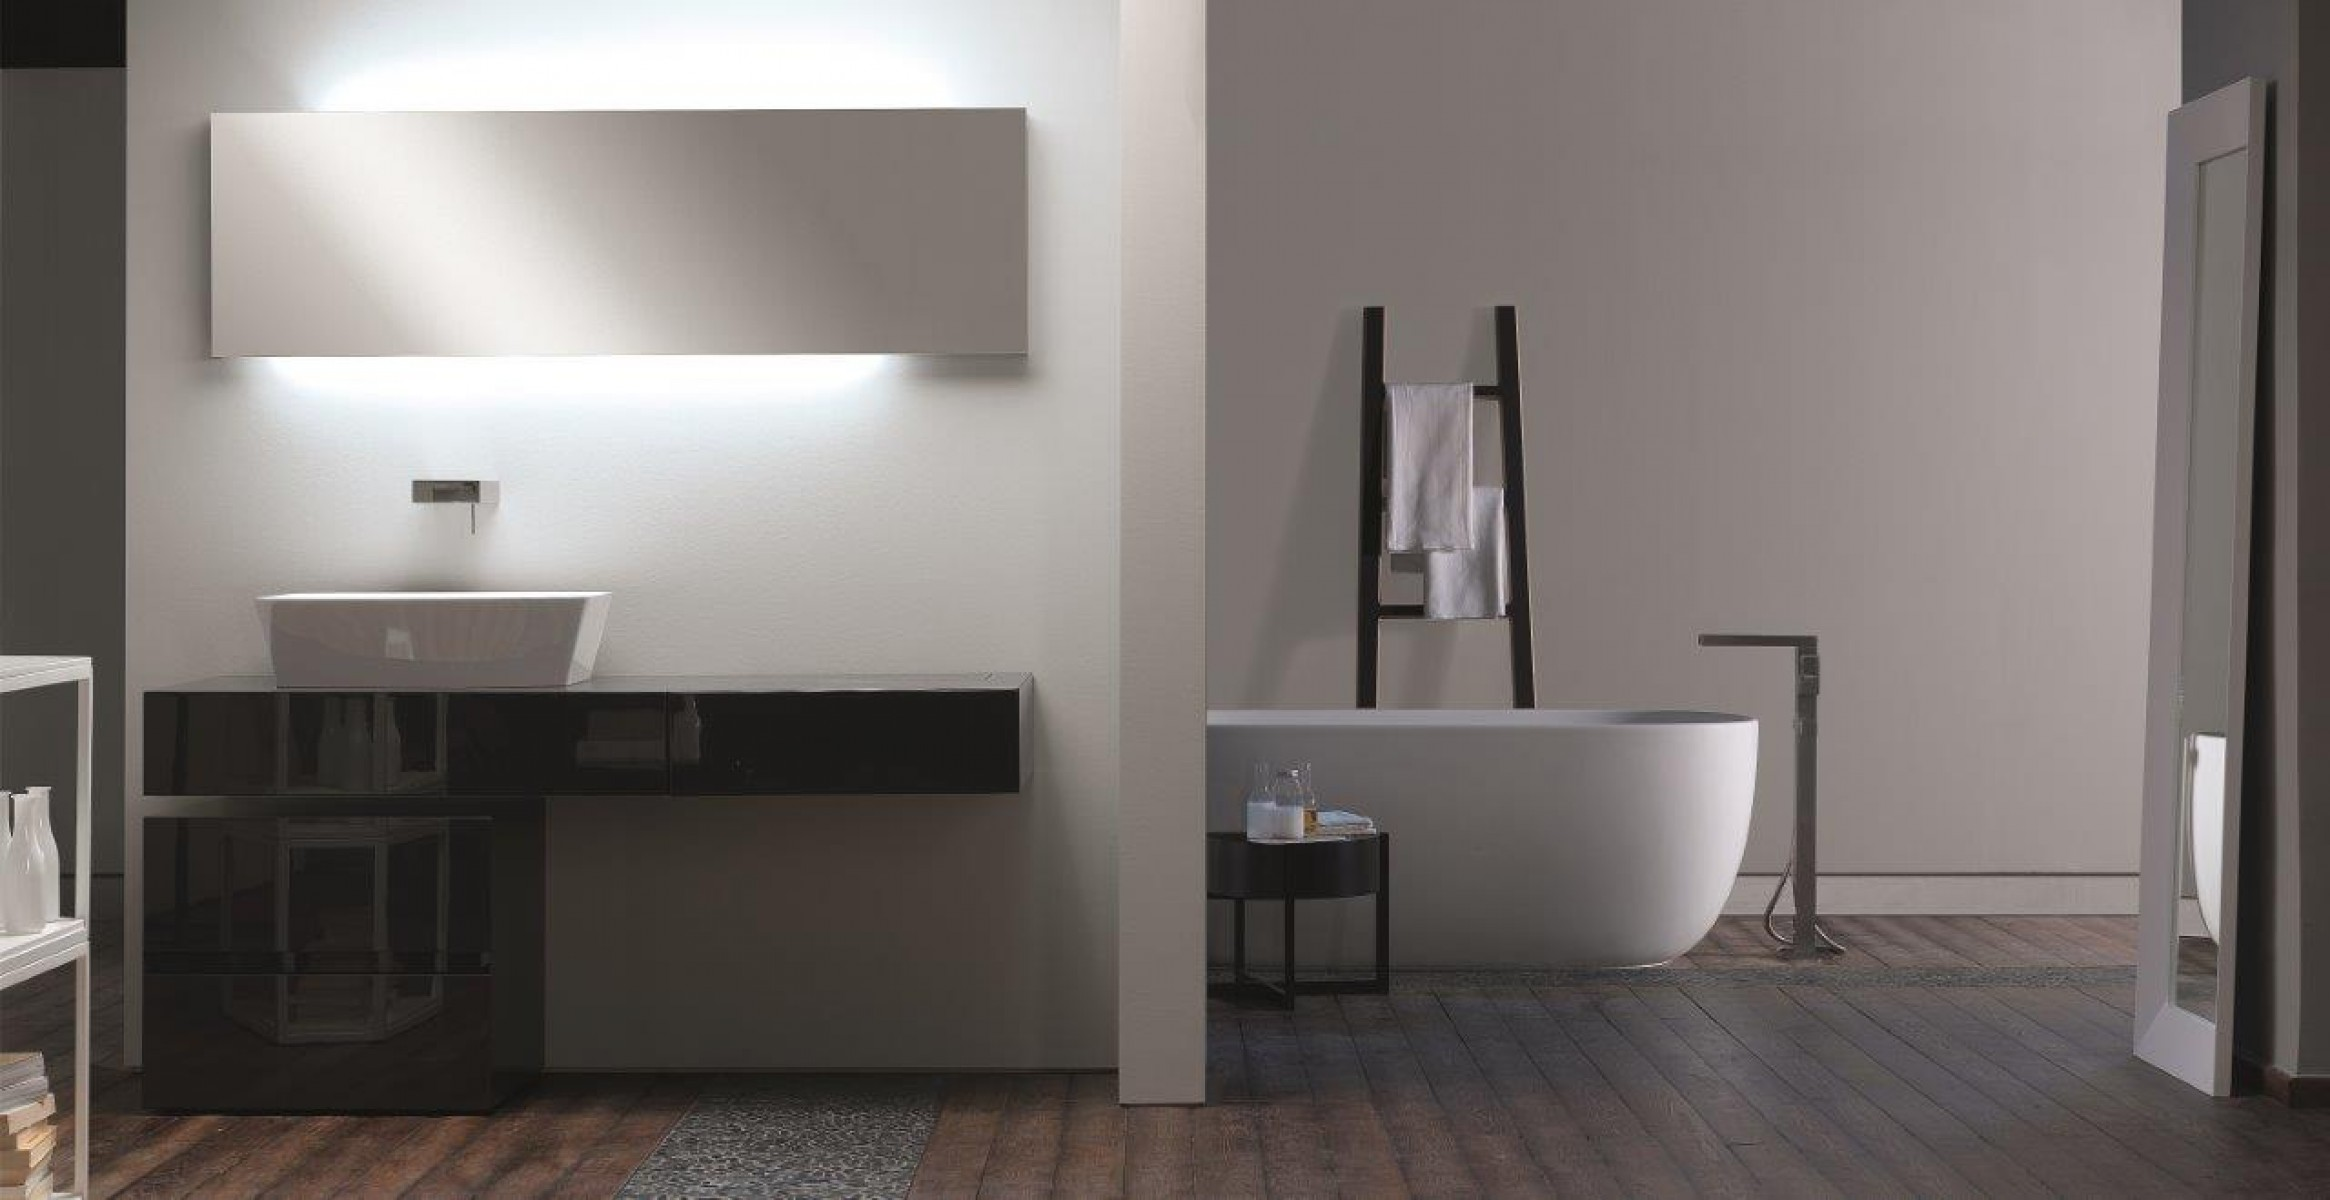 ultra modern italian bathroom design rh home designing com ultra modern bathroom designs ultra modern bathroom design inspiration